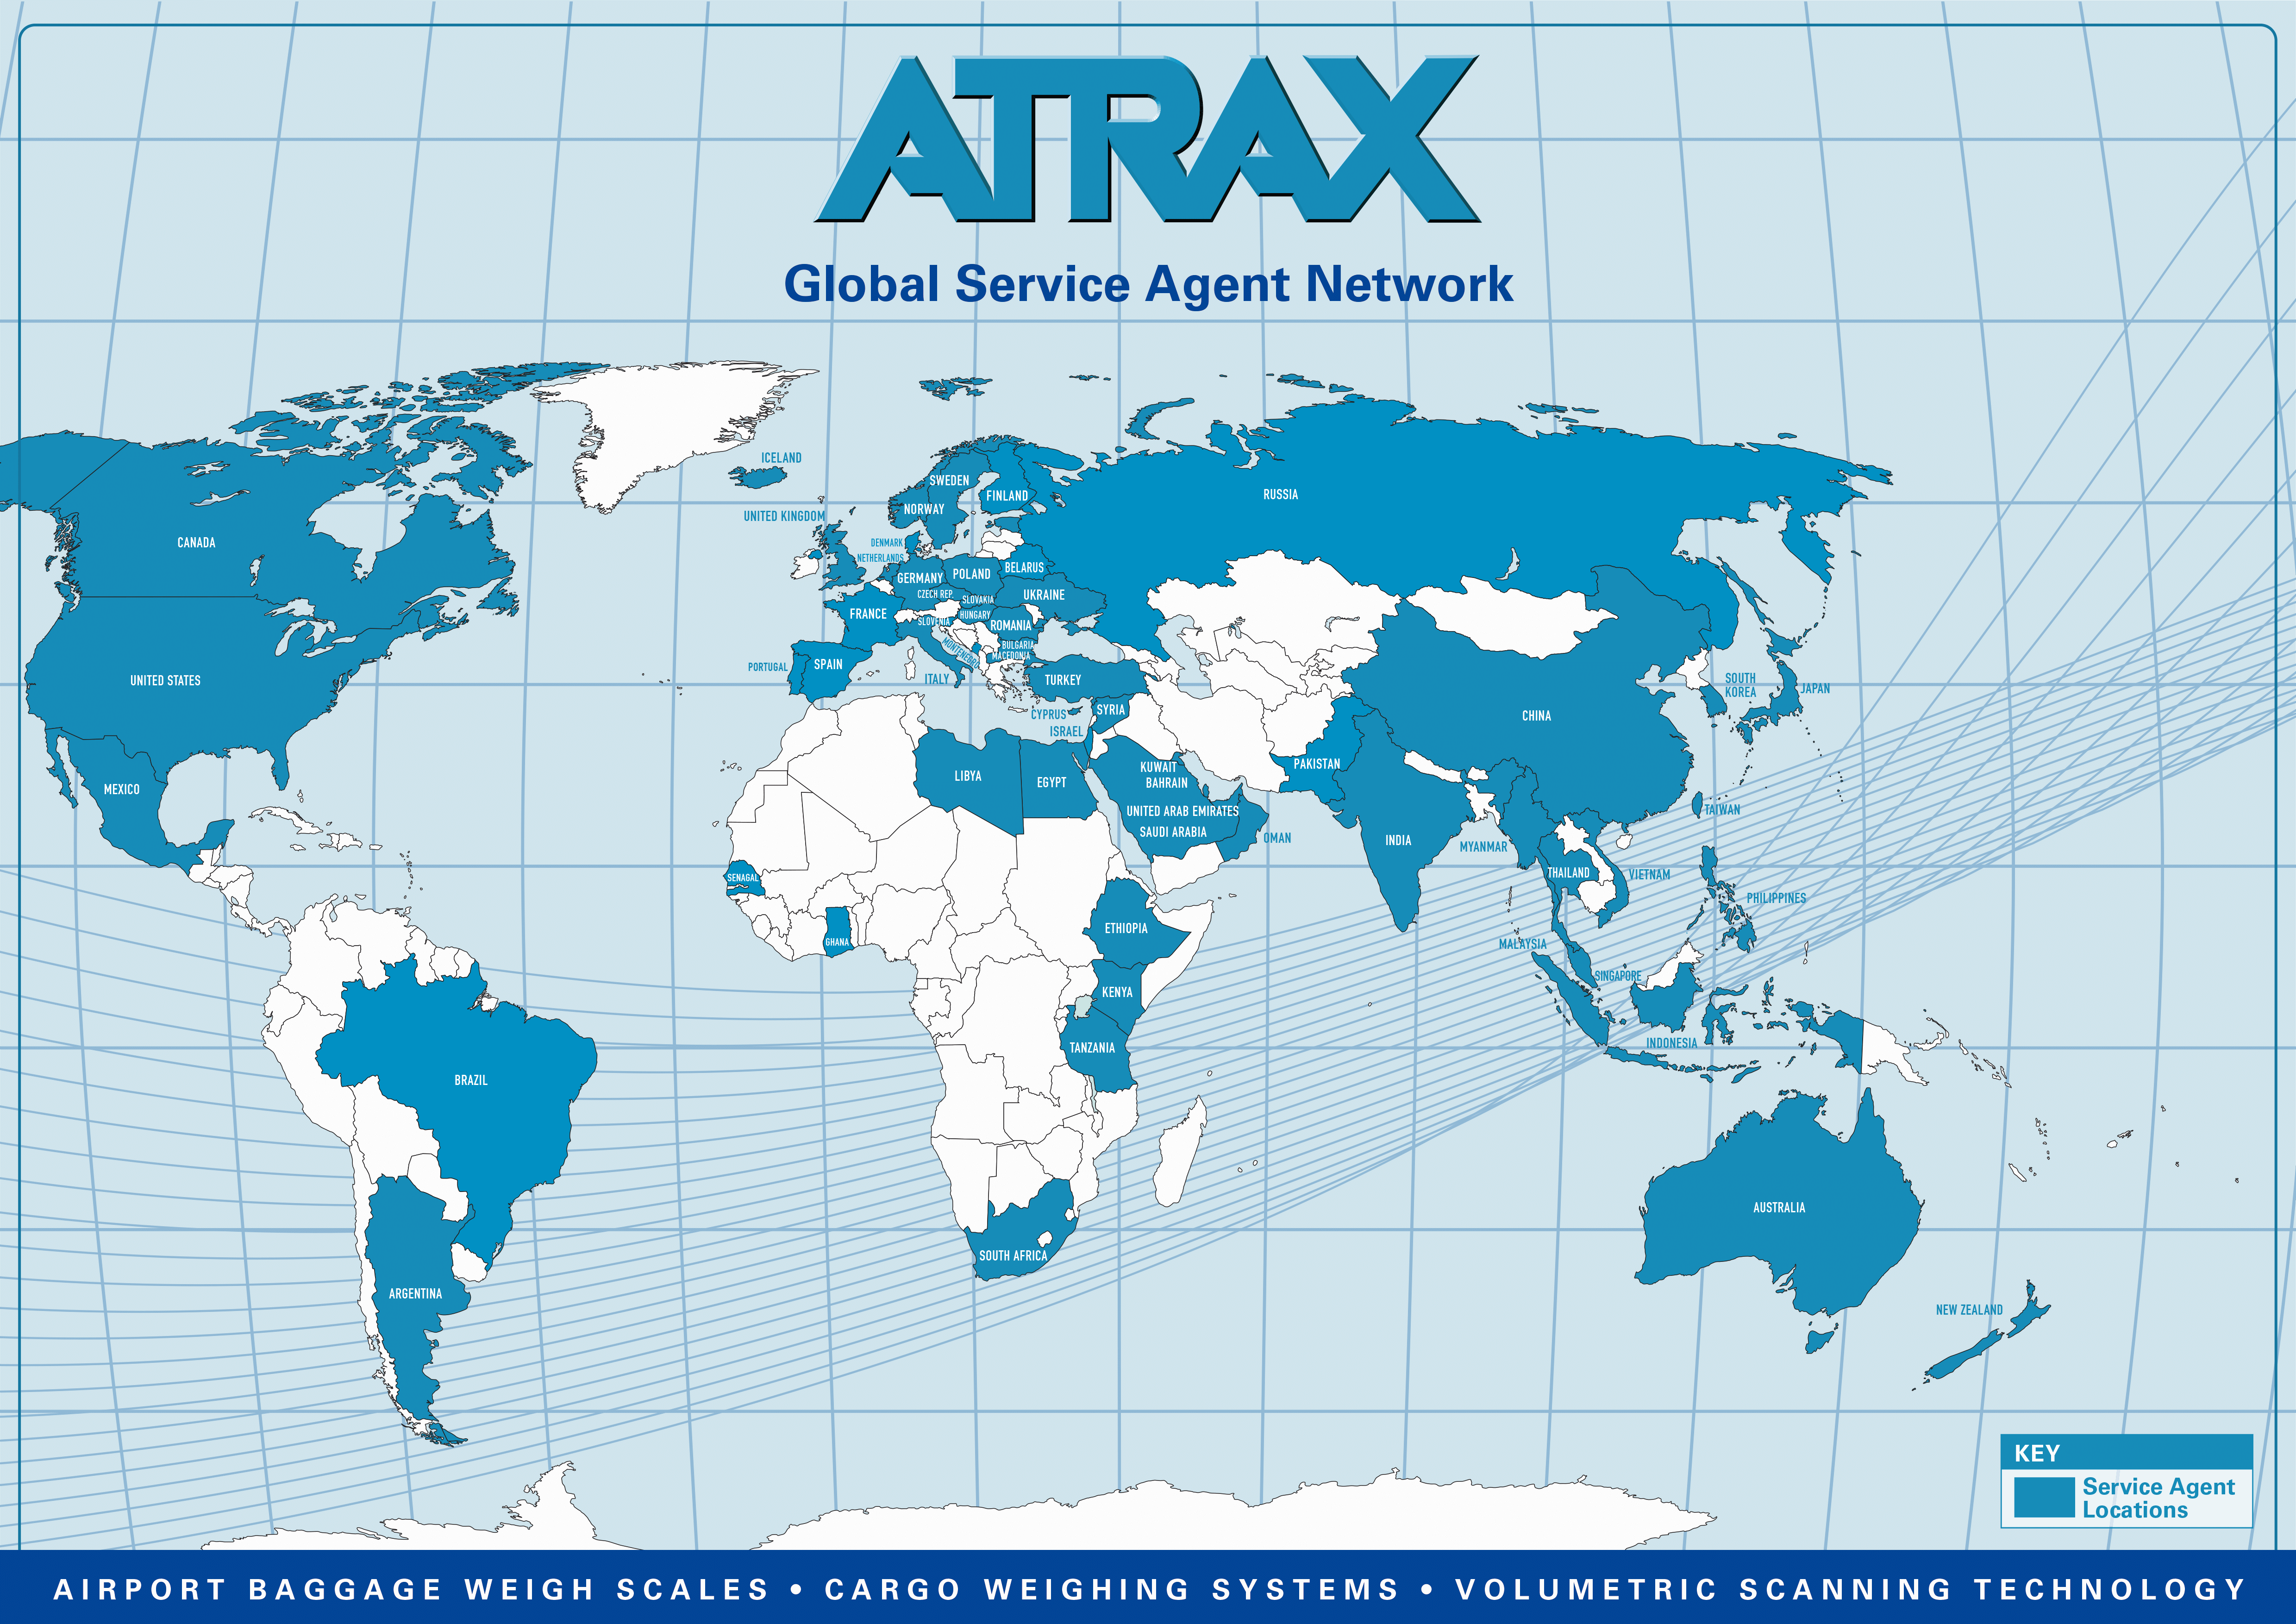 Atrax Global Service Agent Network Map Image   May 2016